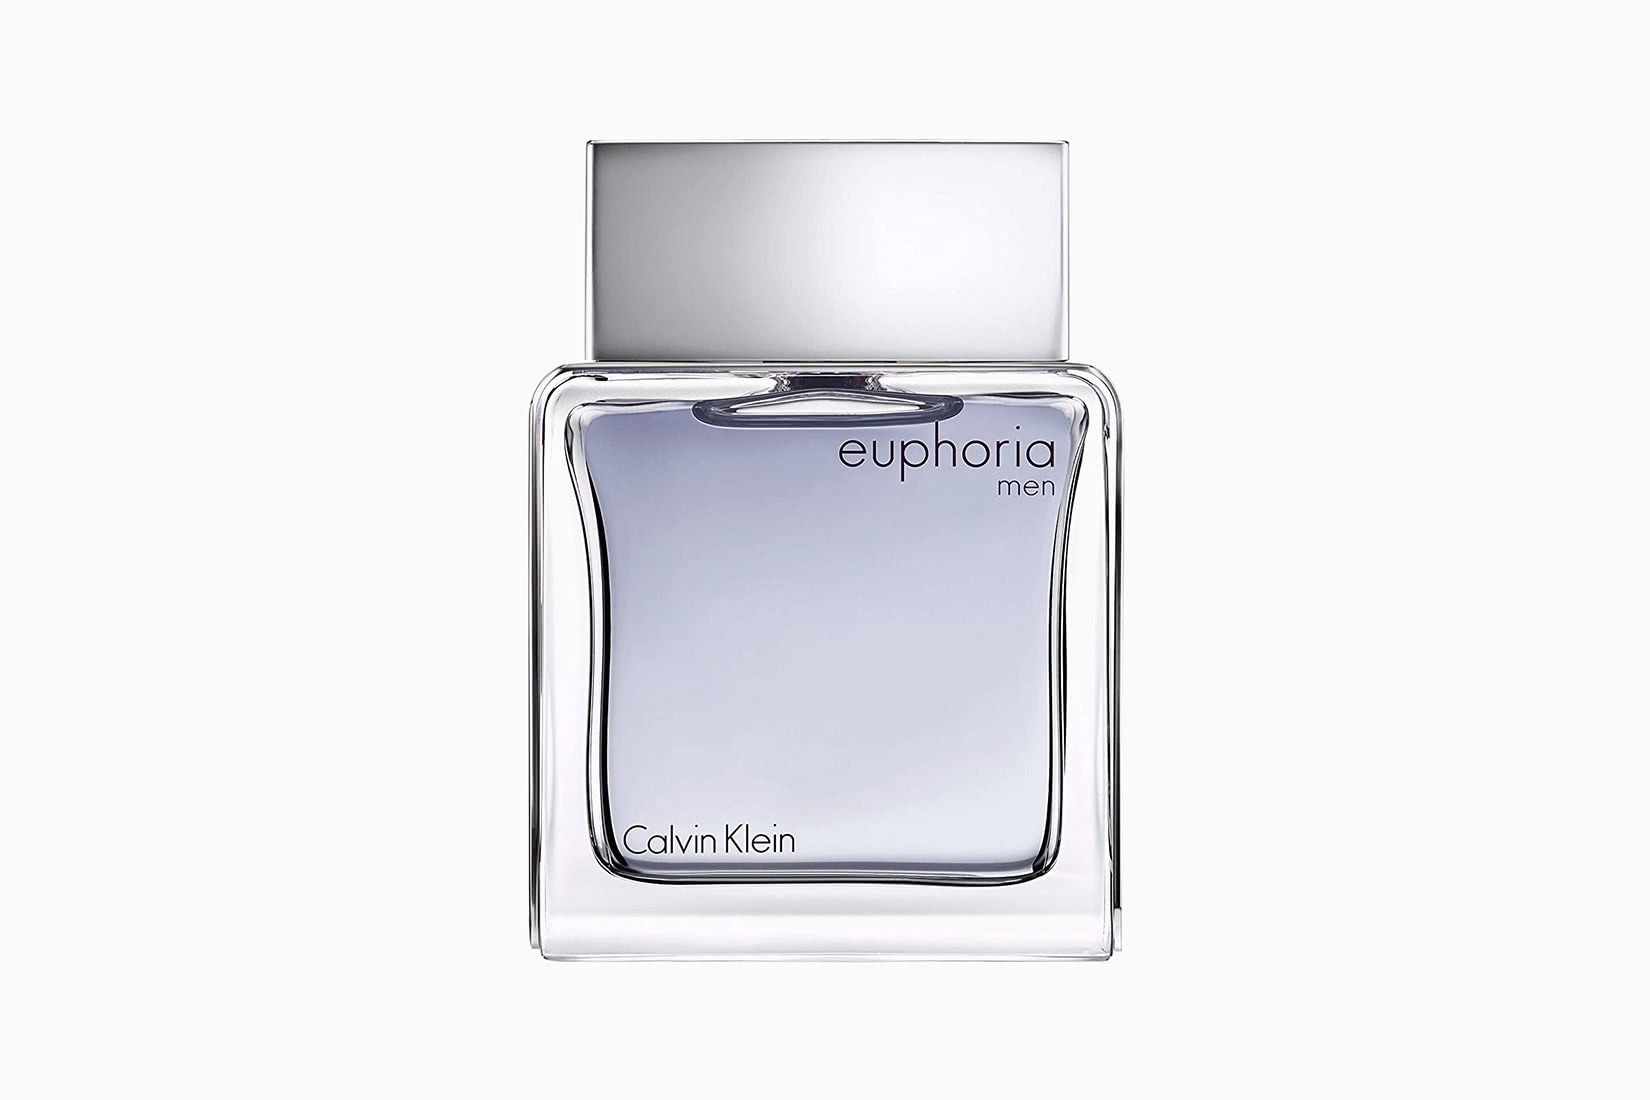 best men cologne calvin klein euphoria - Luxe Digital